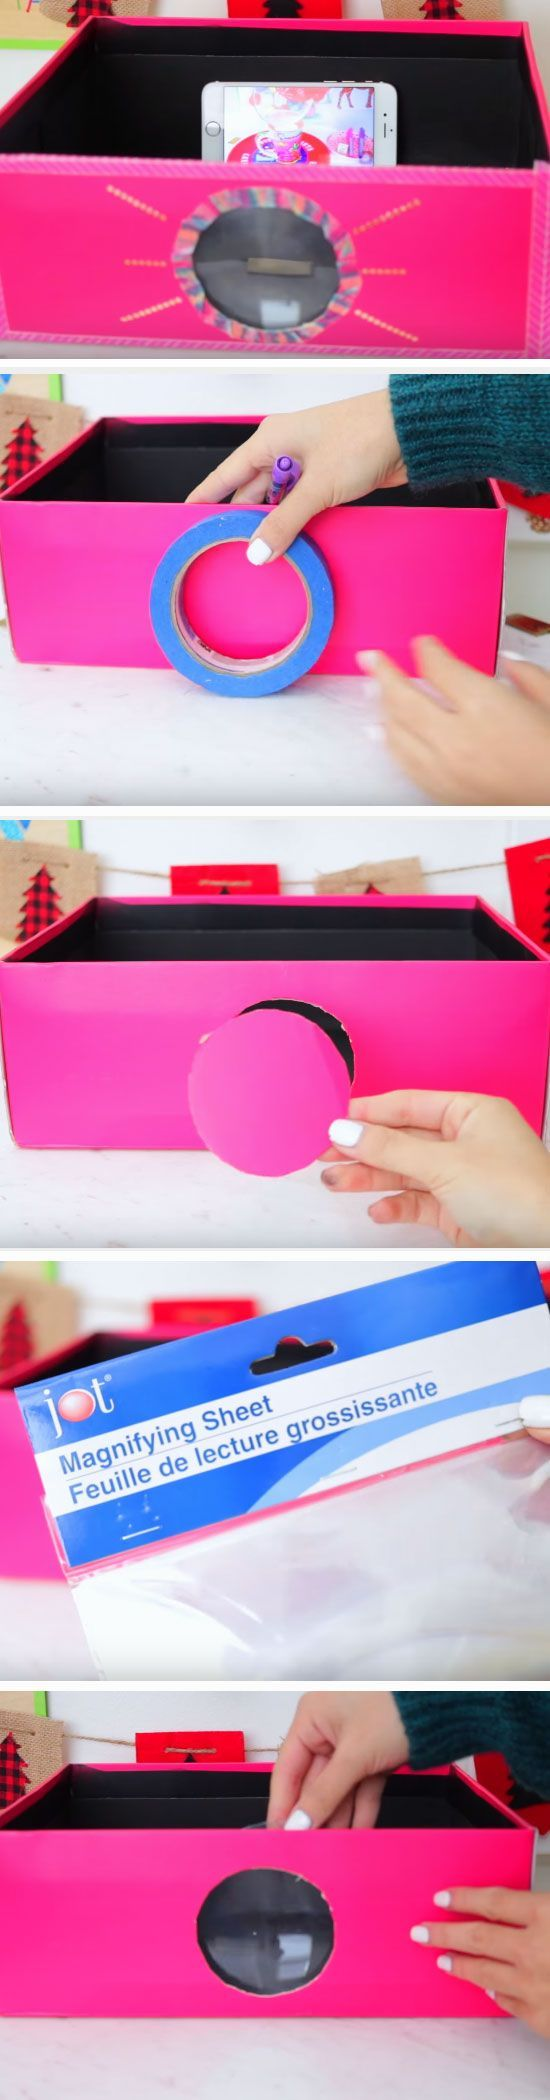 Smartphone Projector   19 DIY Movie Night Ideas for Teens that will get the party started!